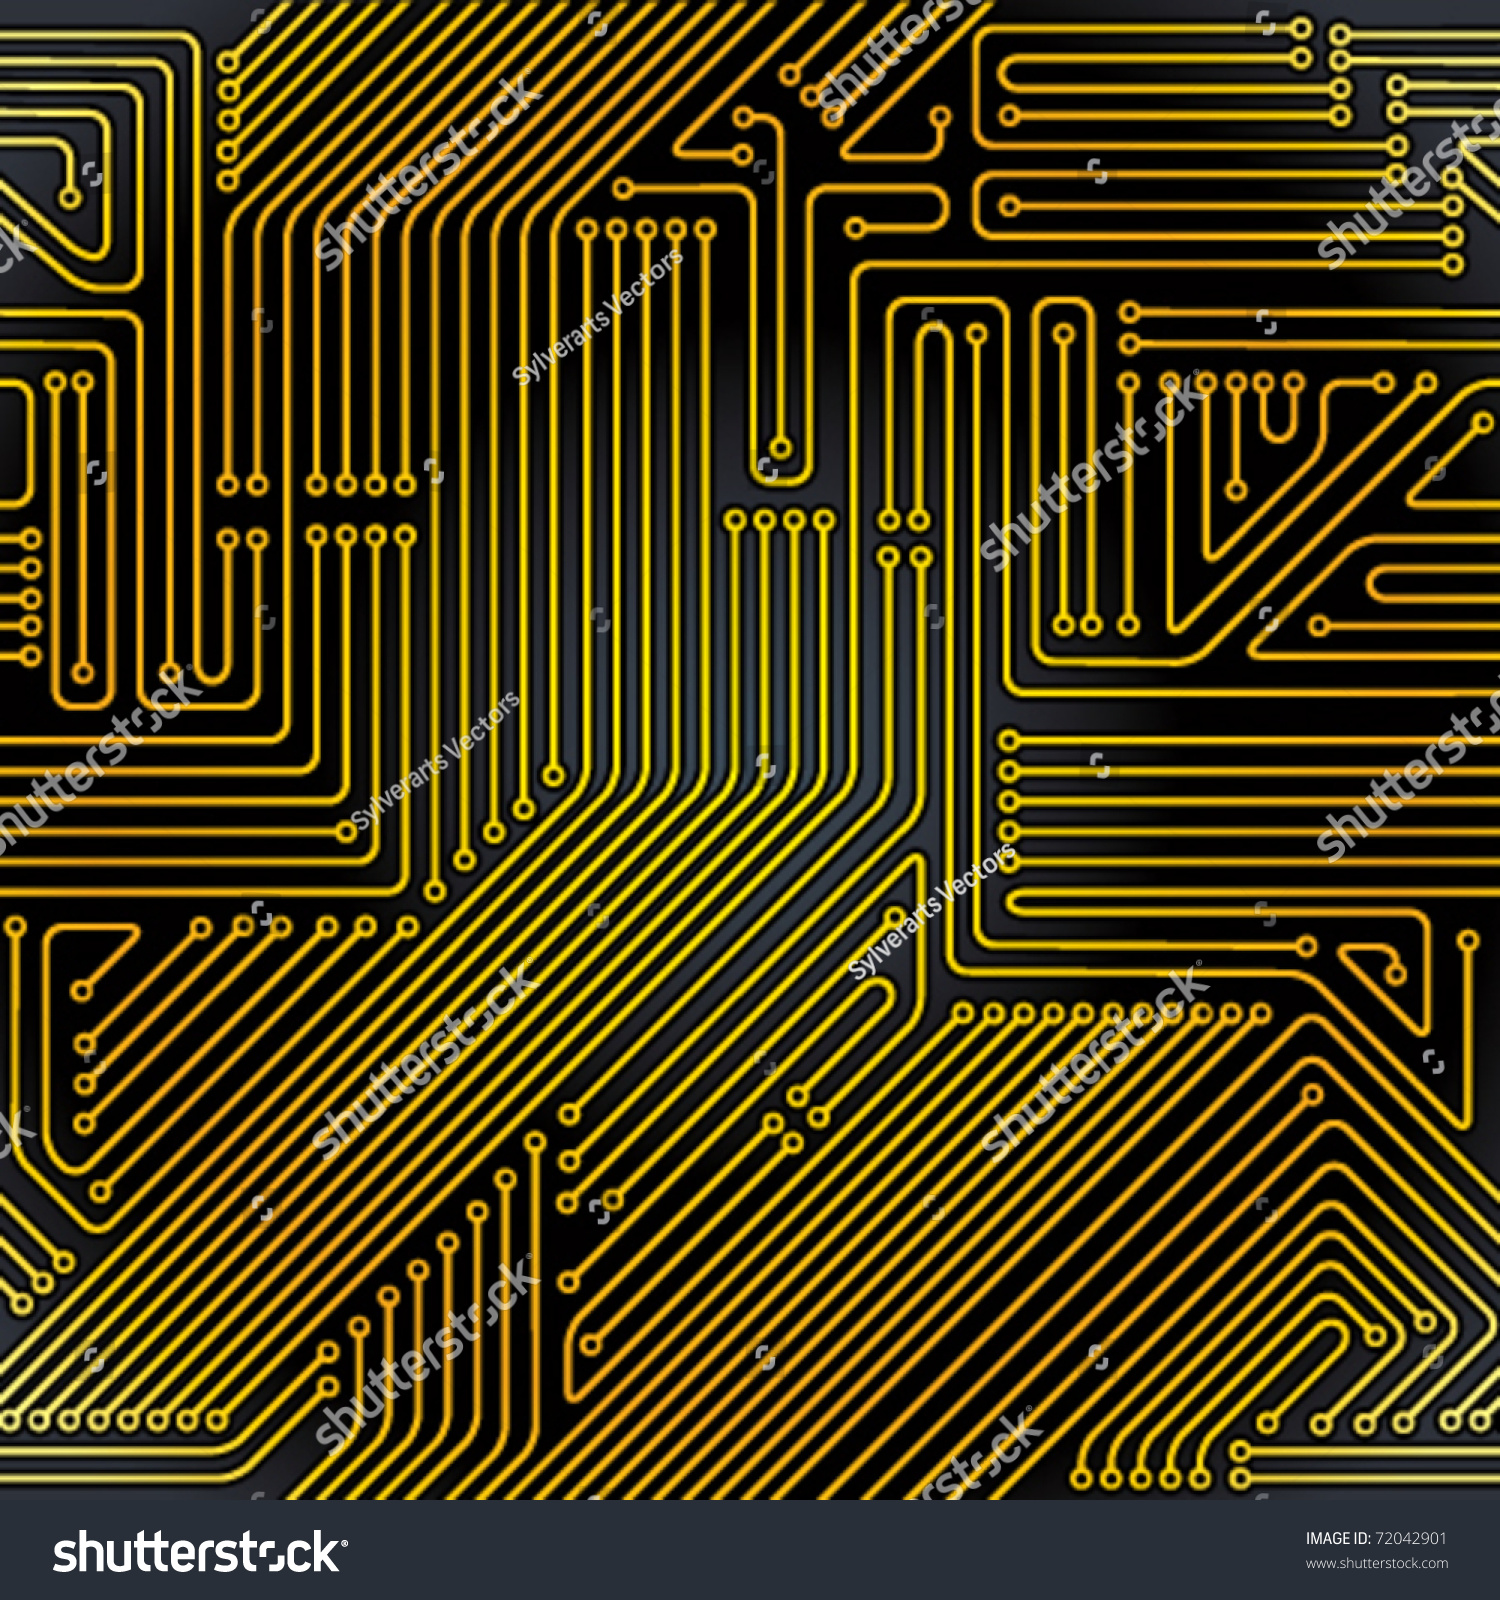 the gallery for gt circuit board background tile seamless